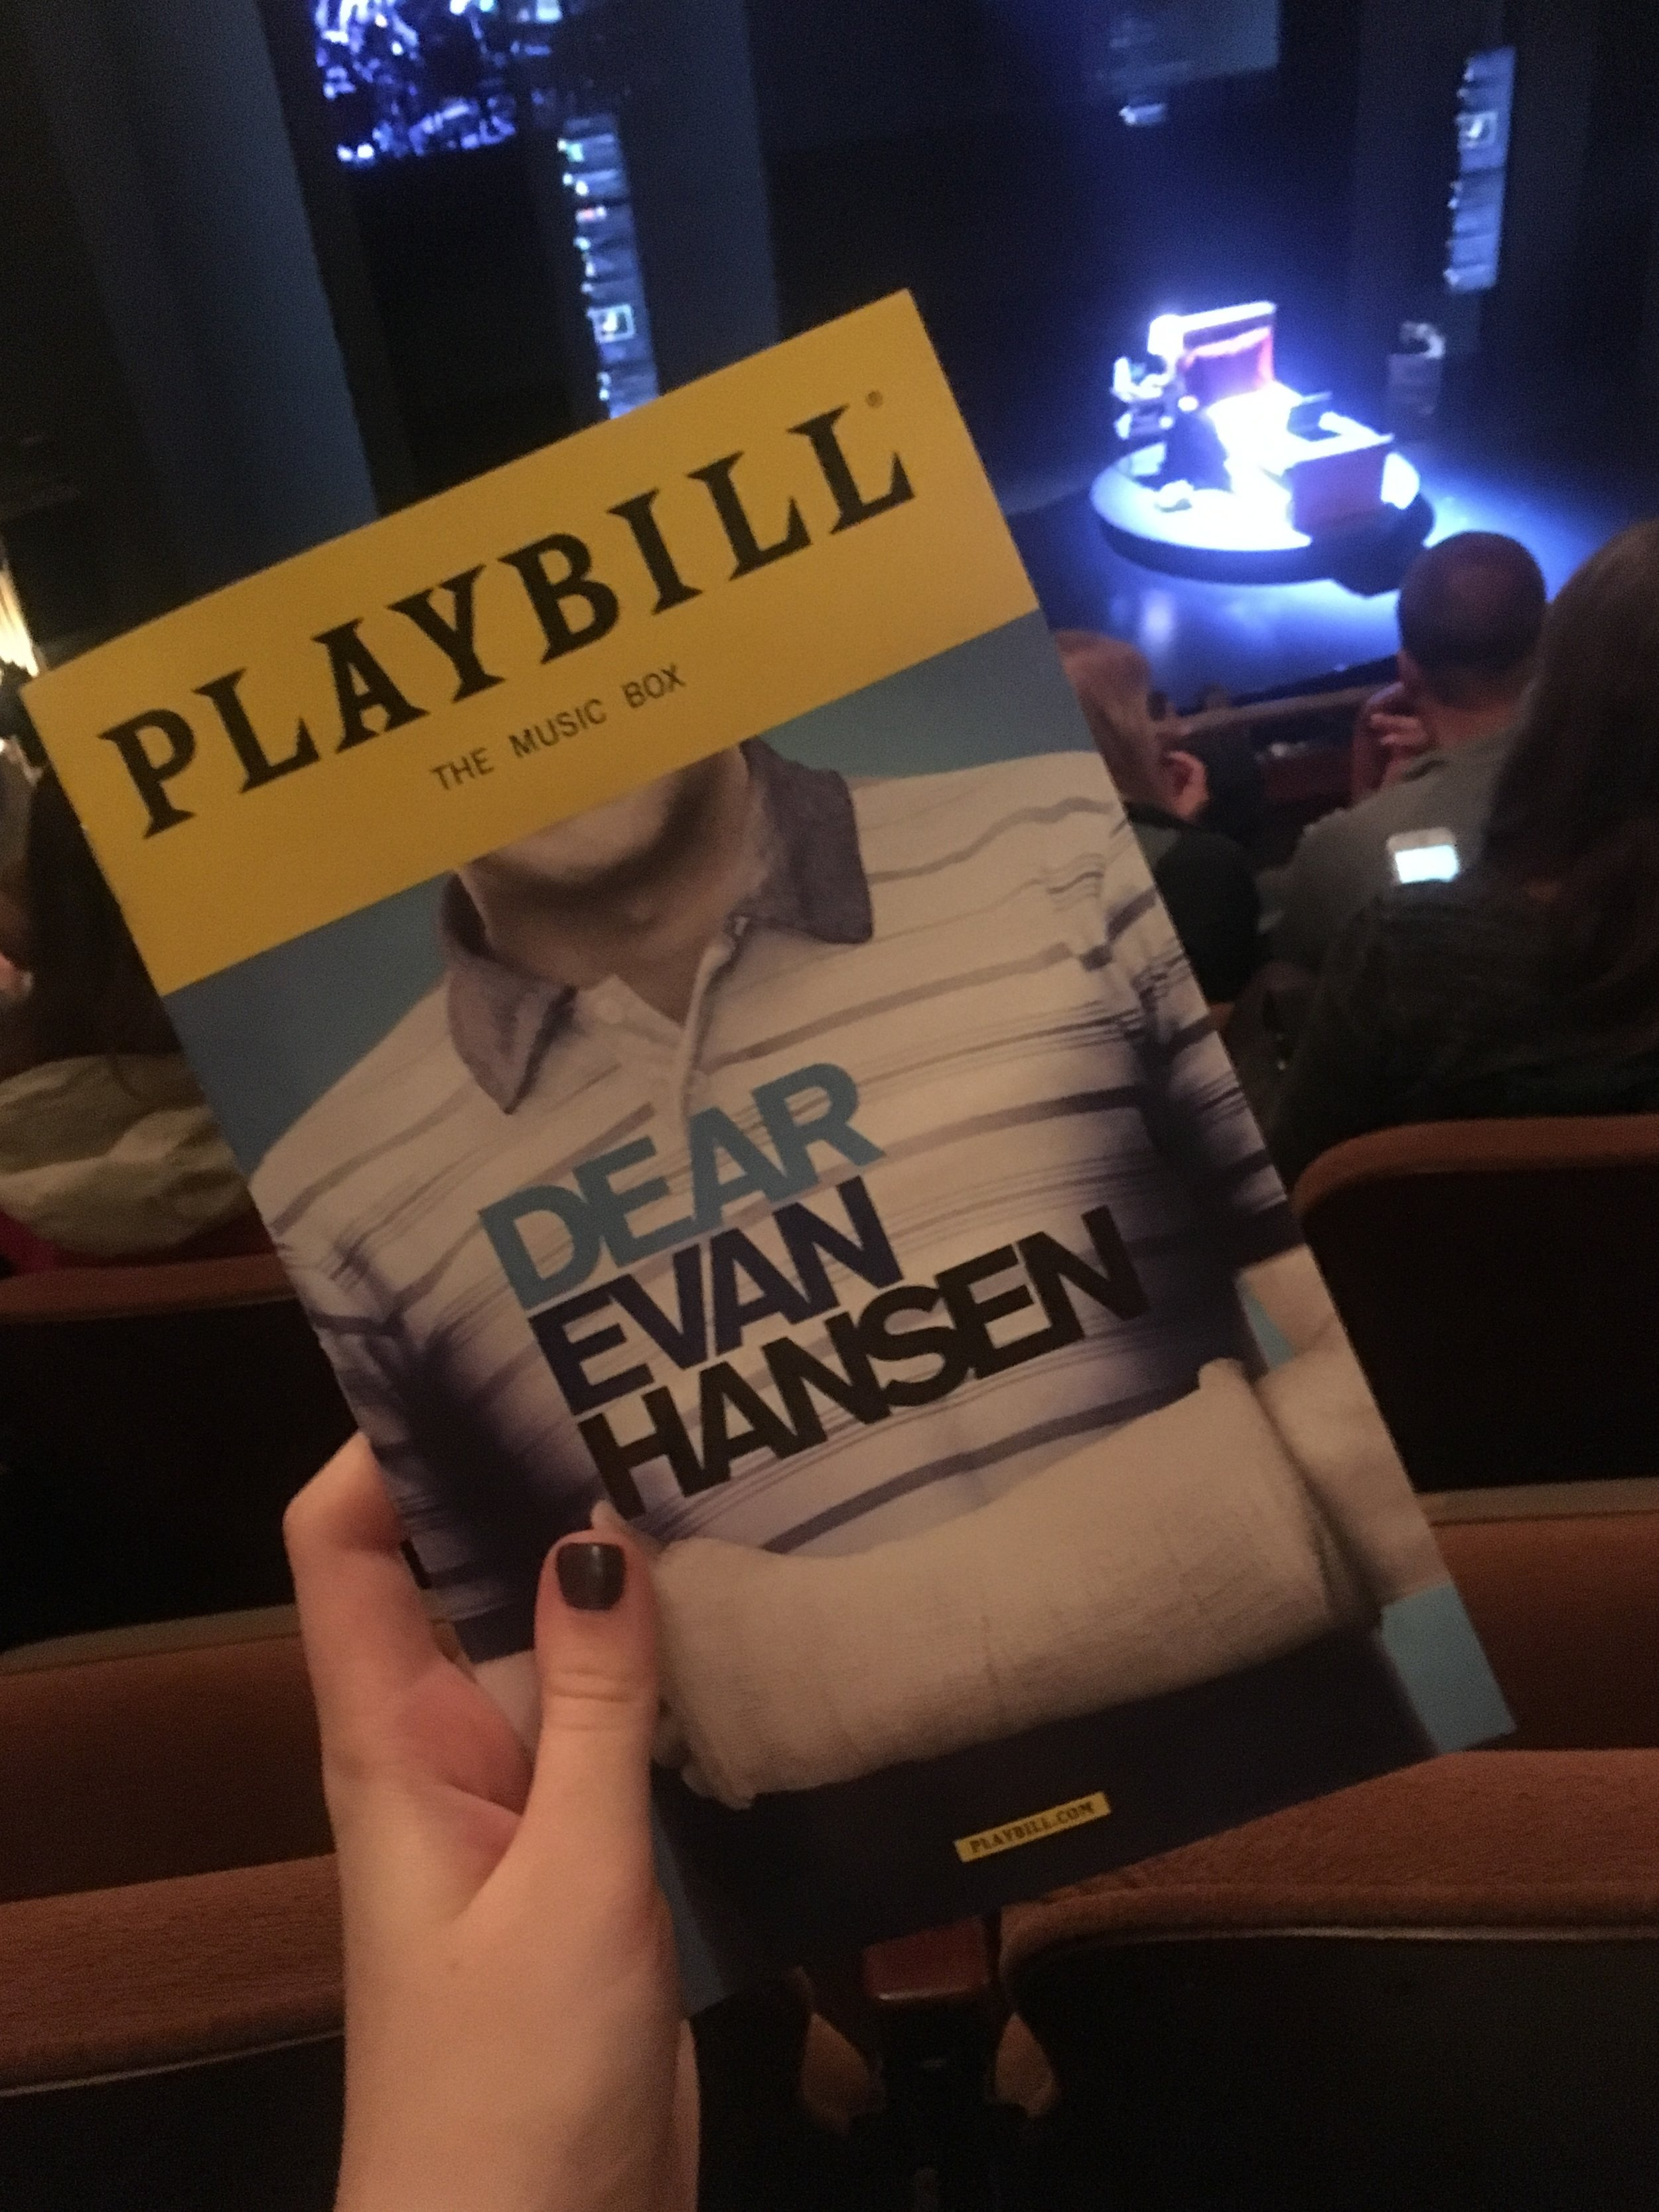 Eleanore J. ('19) takes a quick photo of her Playbill before the show.